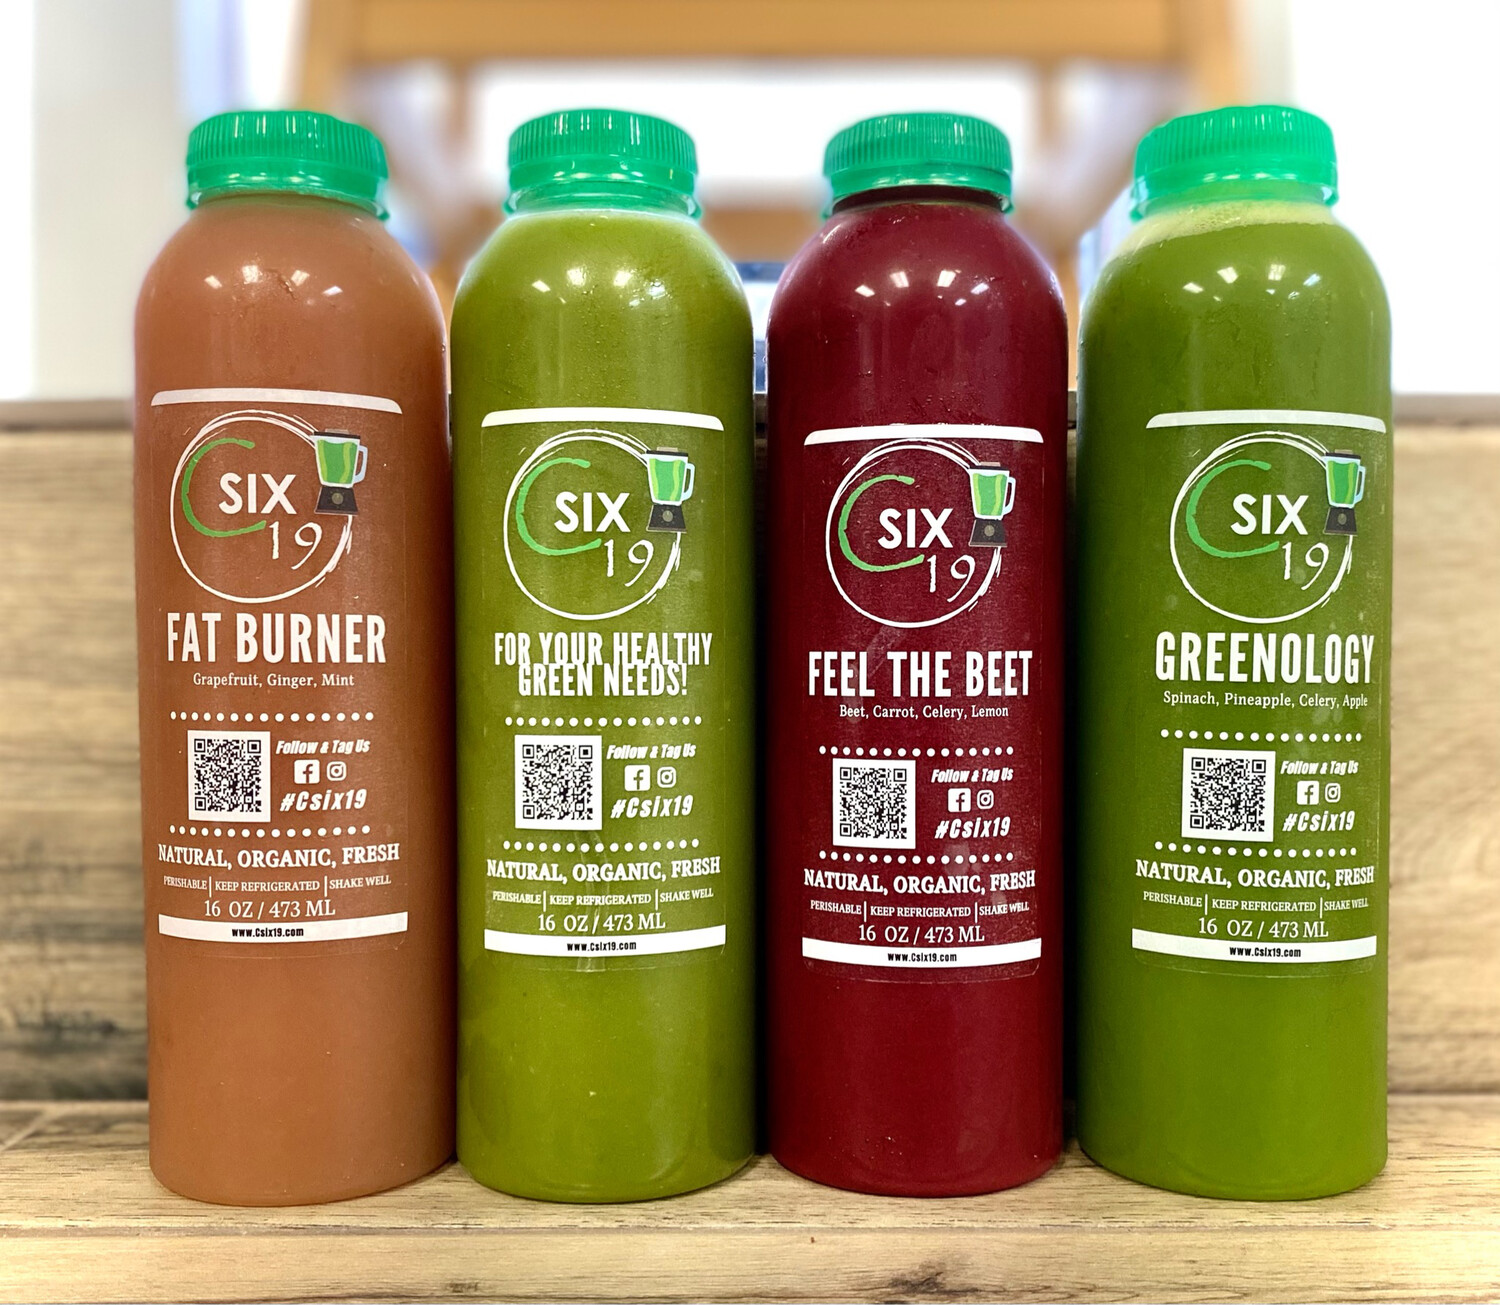 Csix19 Cold Pressed Green Juices